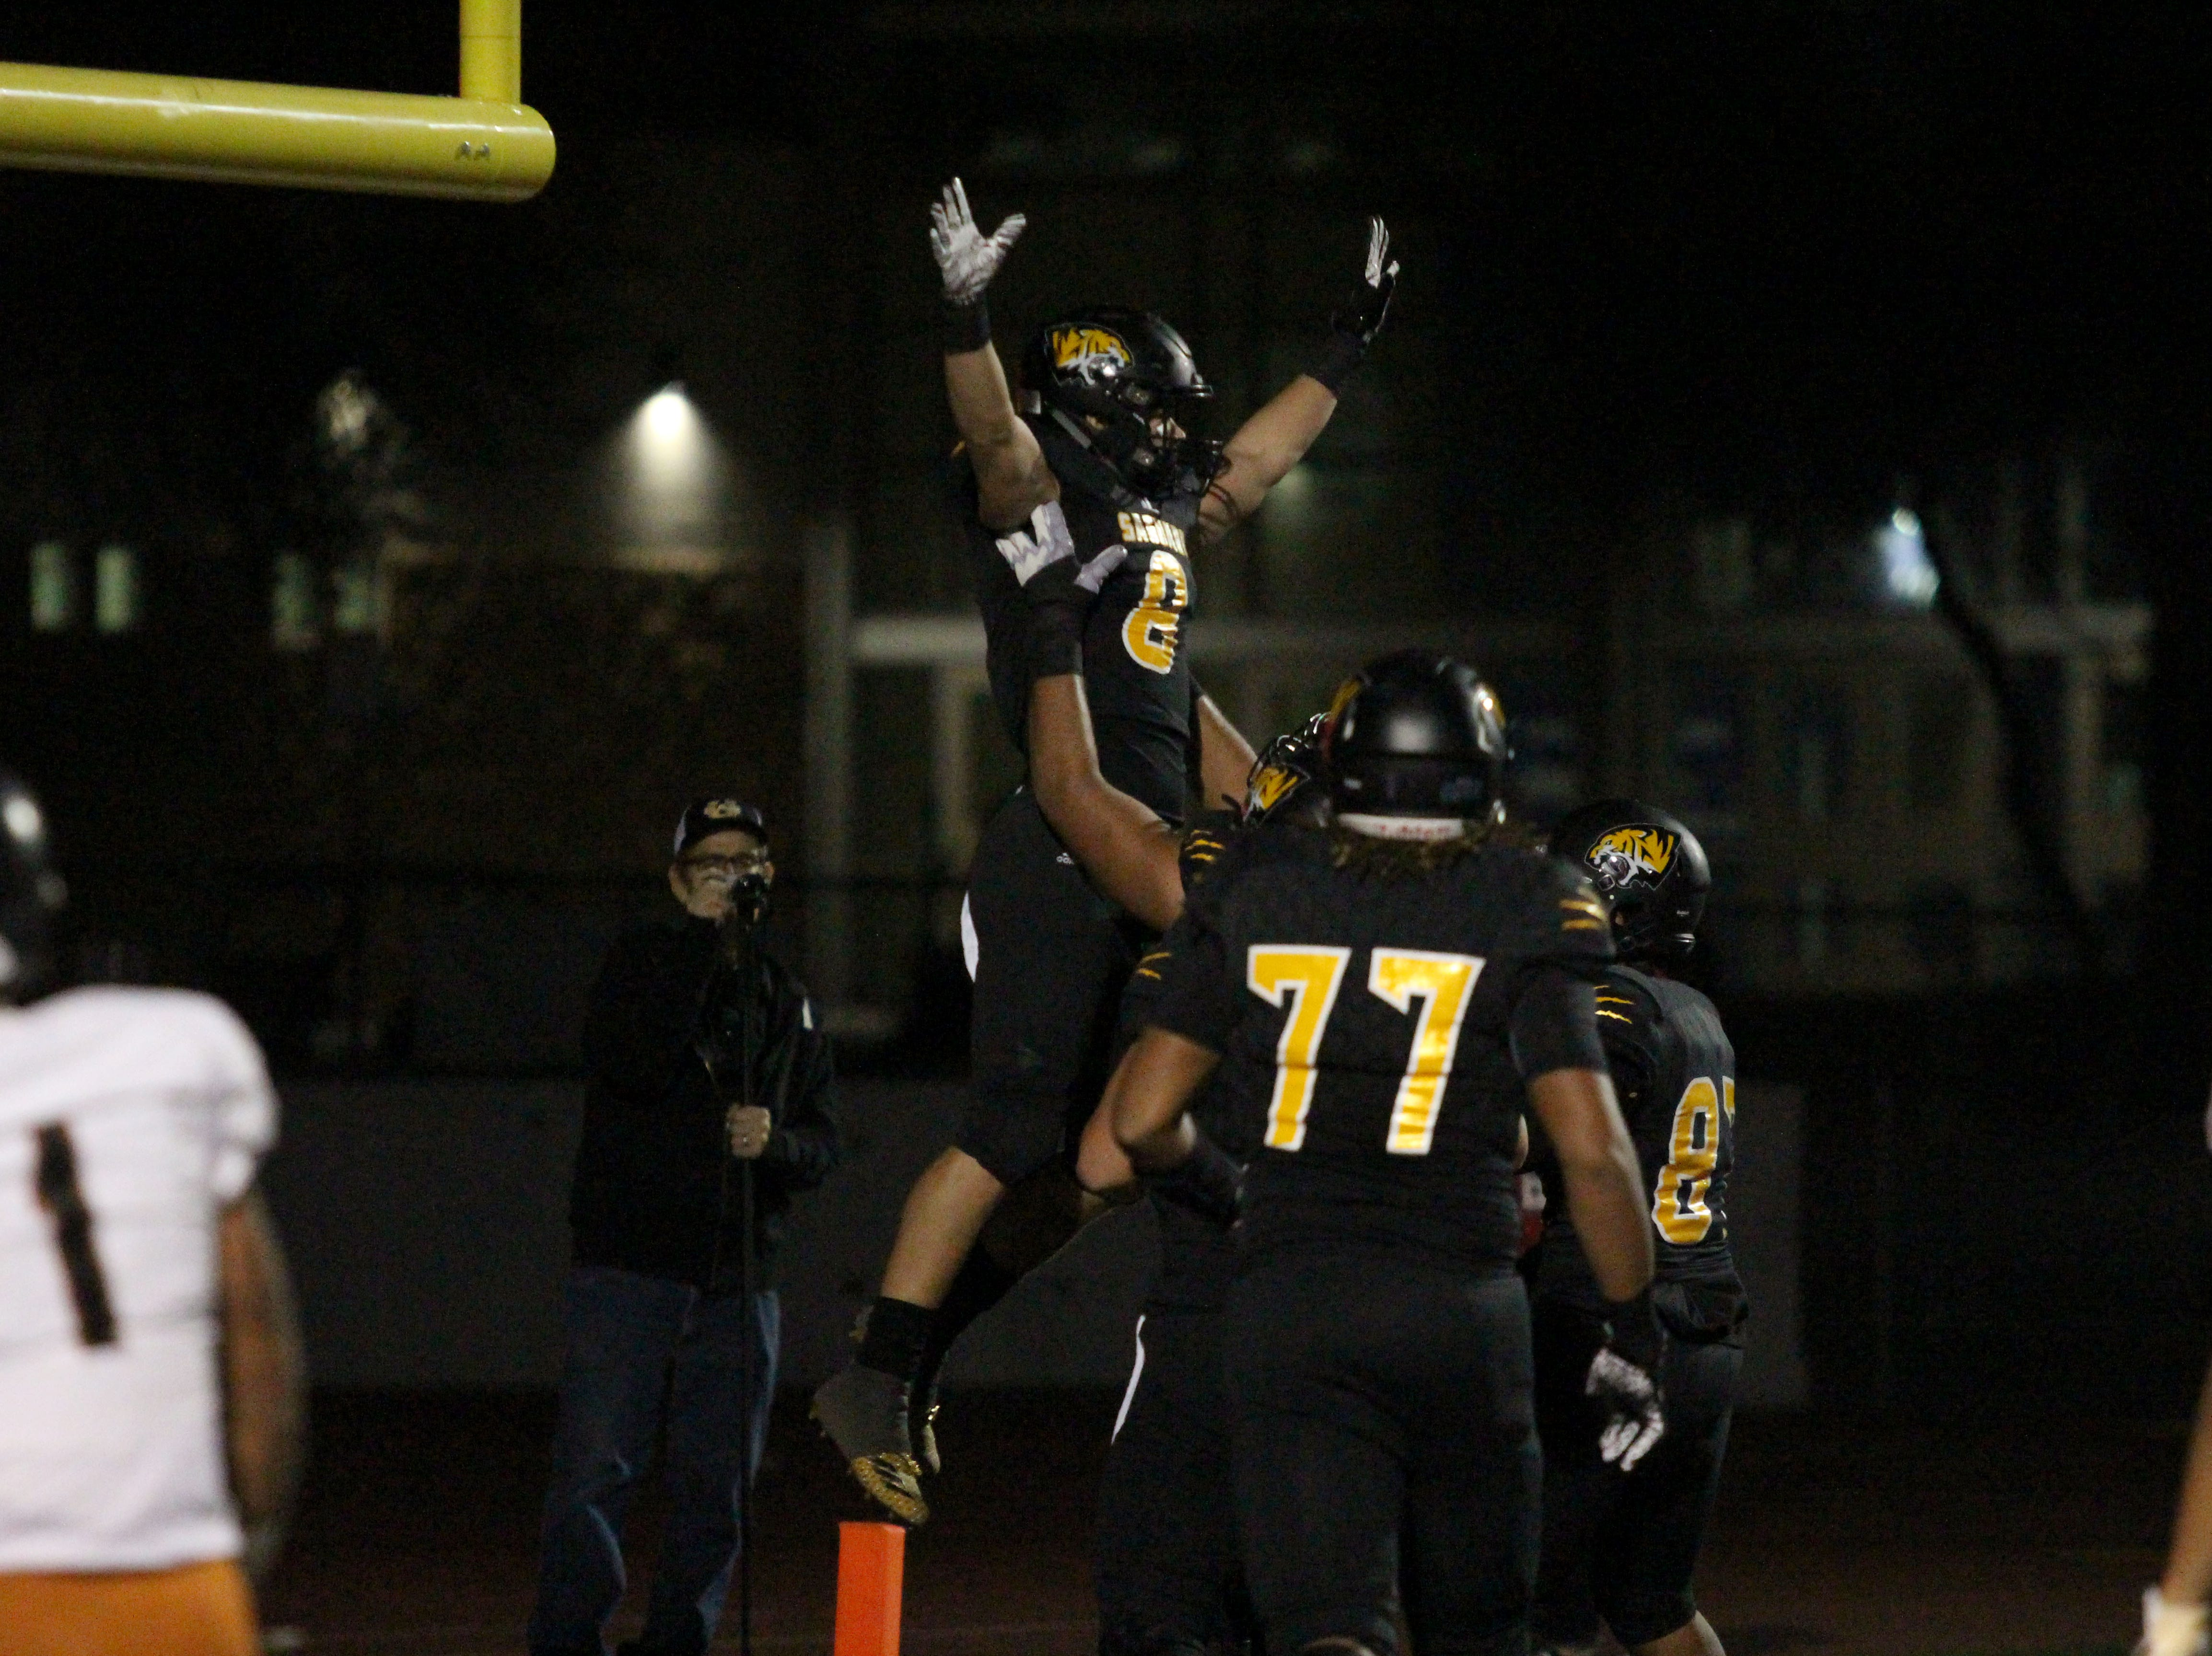 Saguaro's player celebrate after Connor Soelle's touchdown against Desert Edge on Friday night at Coronado High School on Nov. 16, 2018.